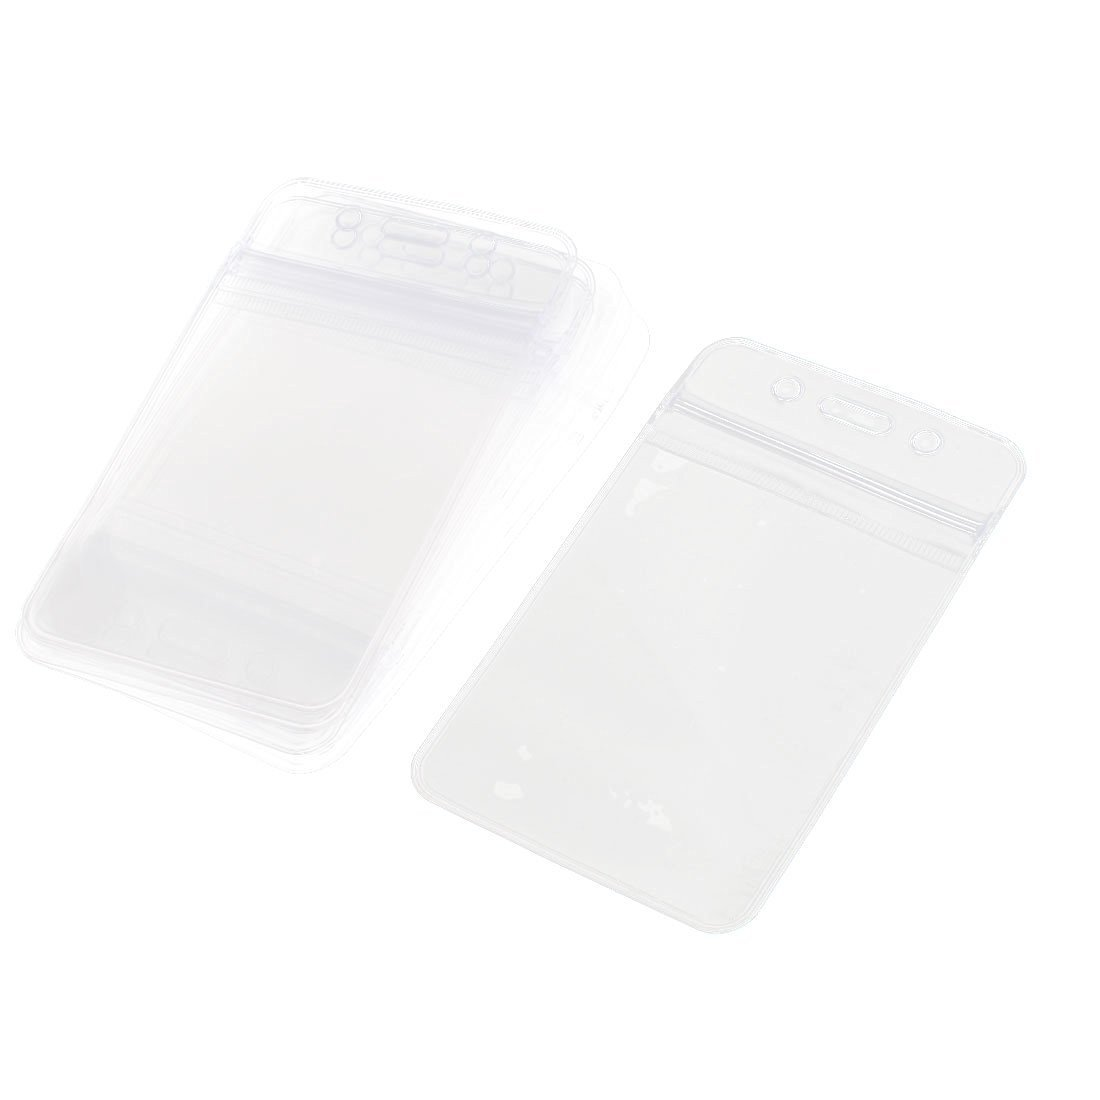 Uxcell Plastic Vertical ID Work School Card Badge Holder, 10 Piece, Clear